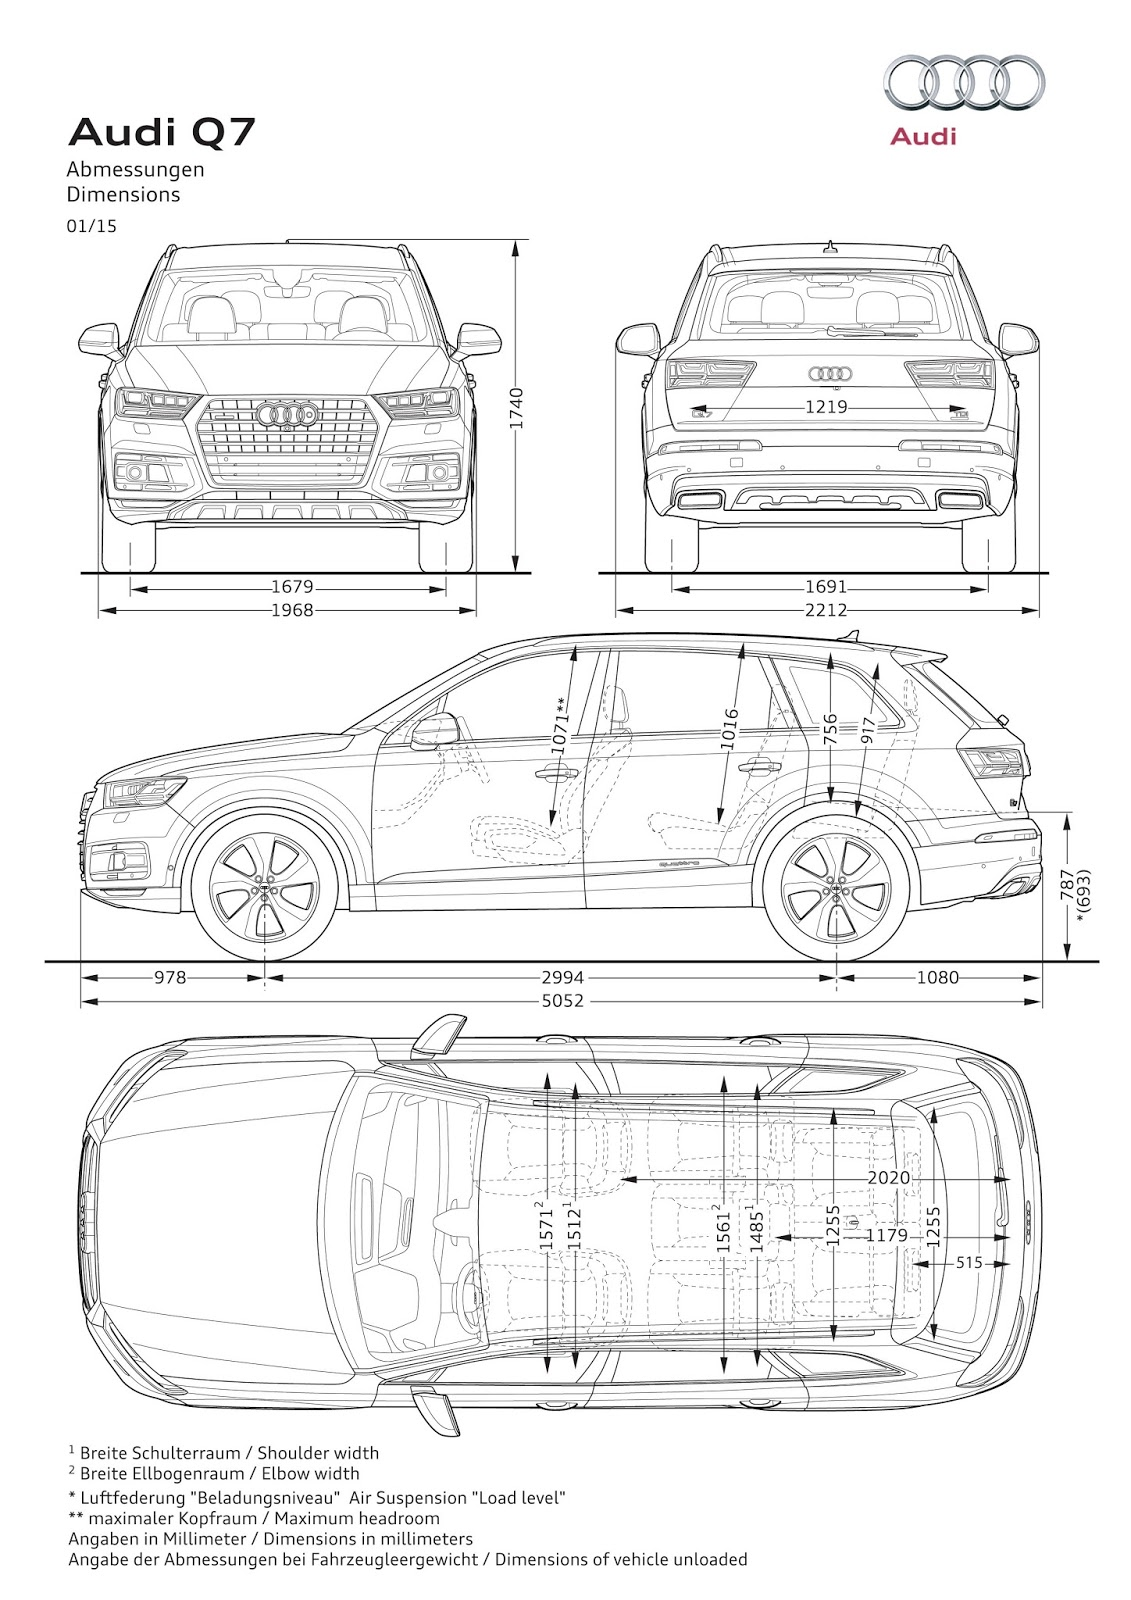 Worksheet. 2015 Grand Auto Show 2016 Audi Q7 Dimensions Engines and Etron